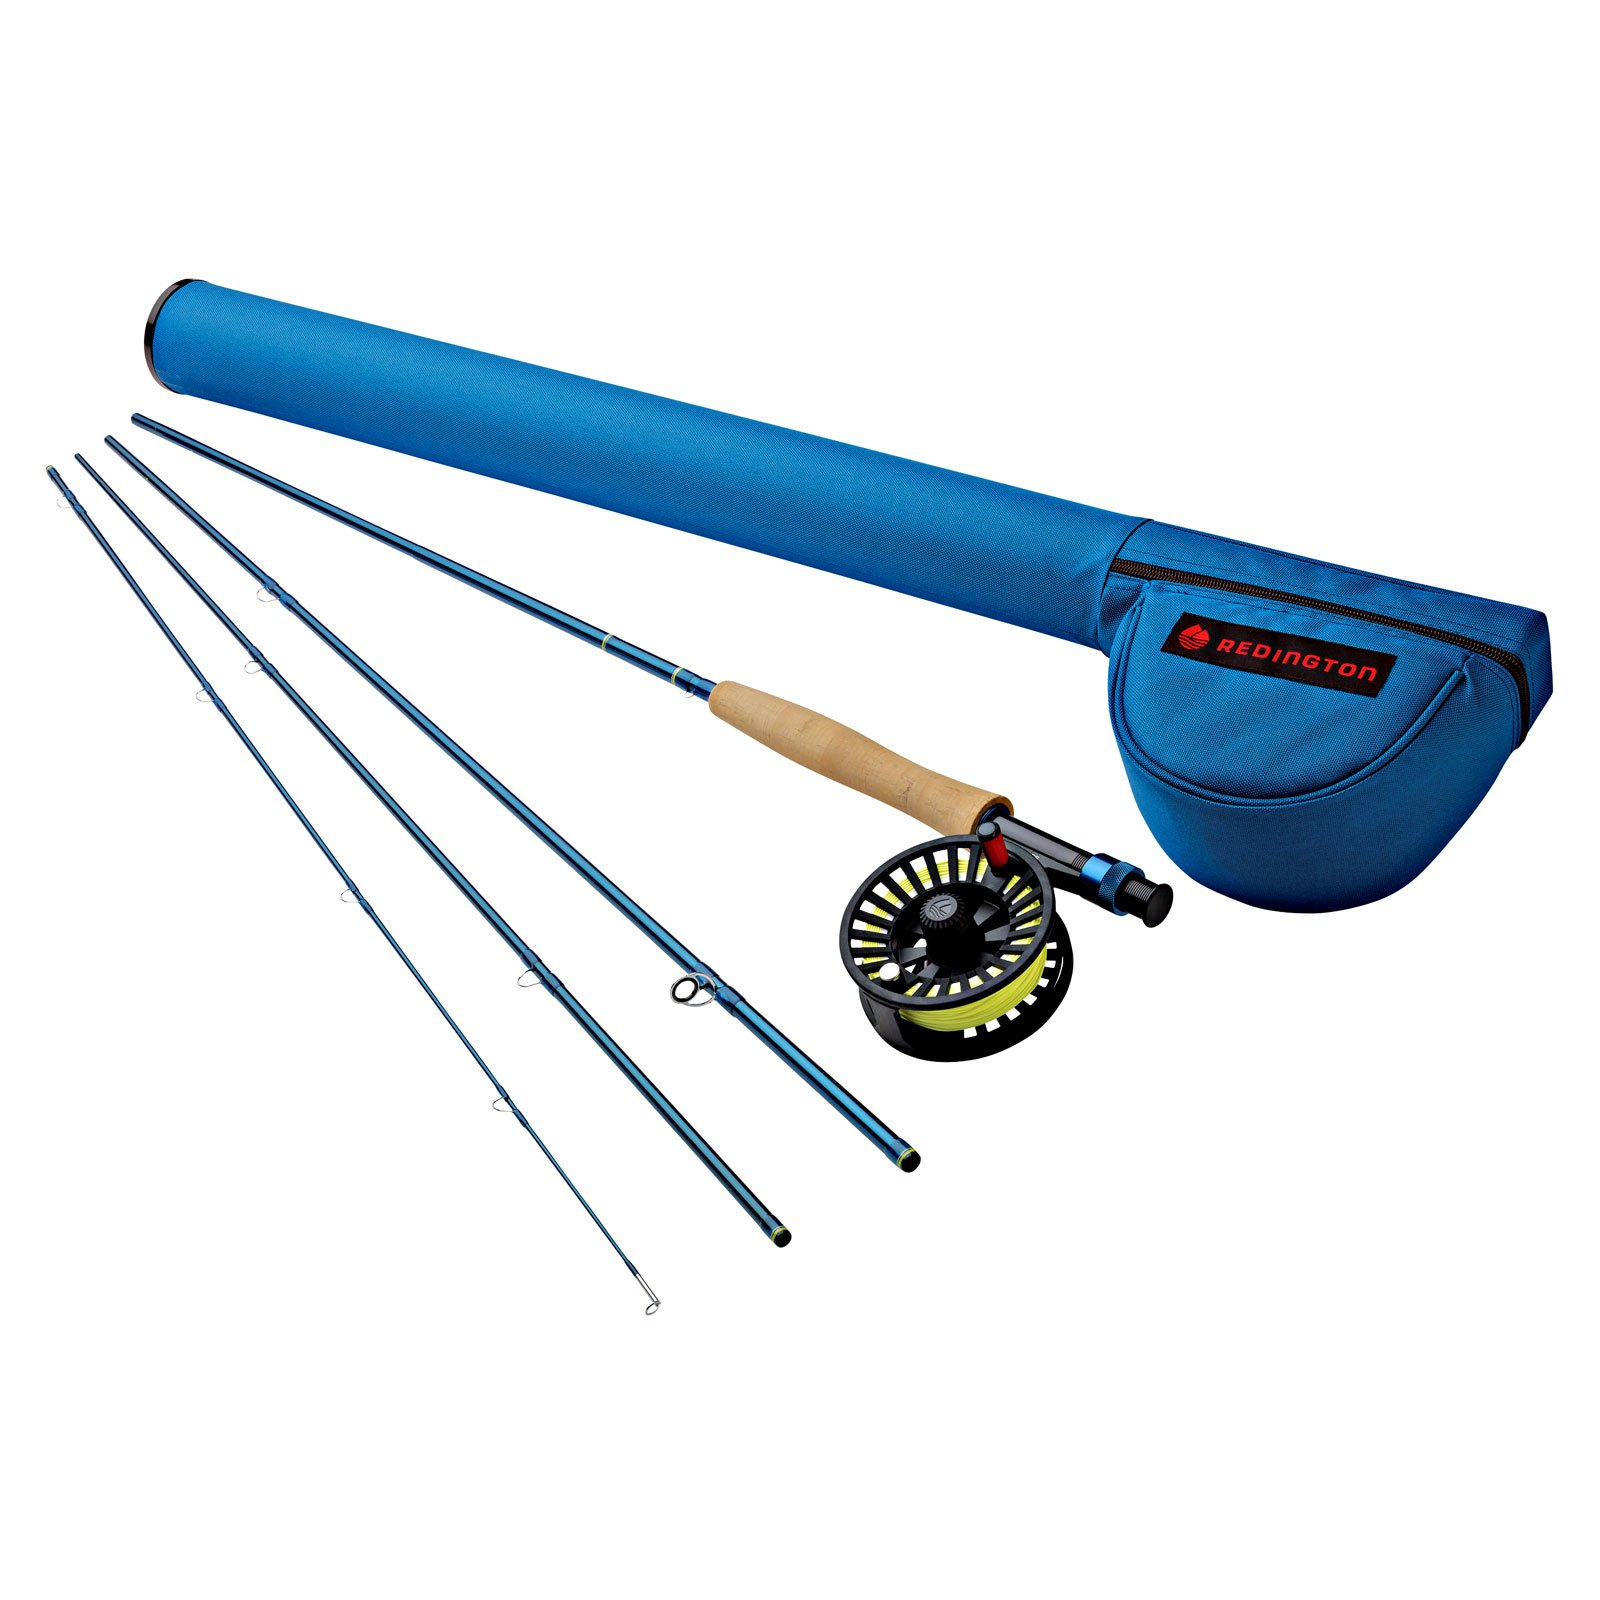 Redington Fly Fishing Fly Fishing Combo Kit 990-2 Outfit with Cross water 9 Wt. 9' Reel (Piece 2)